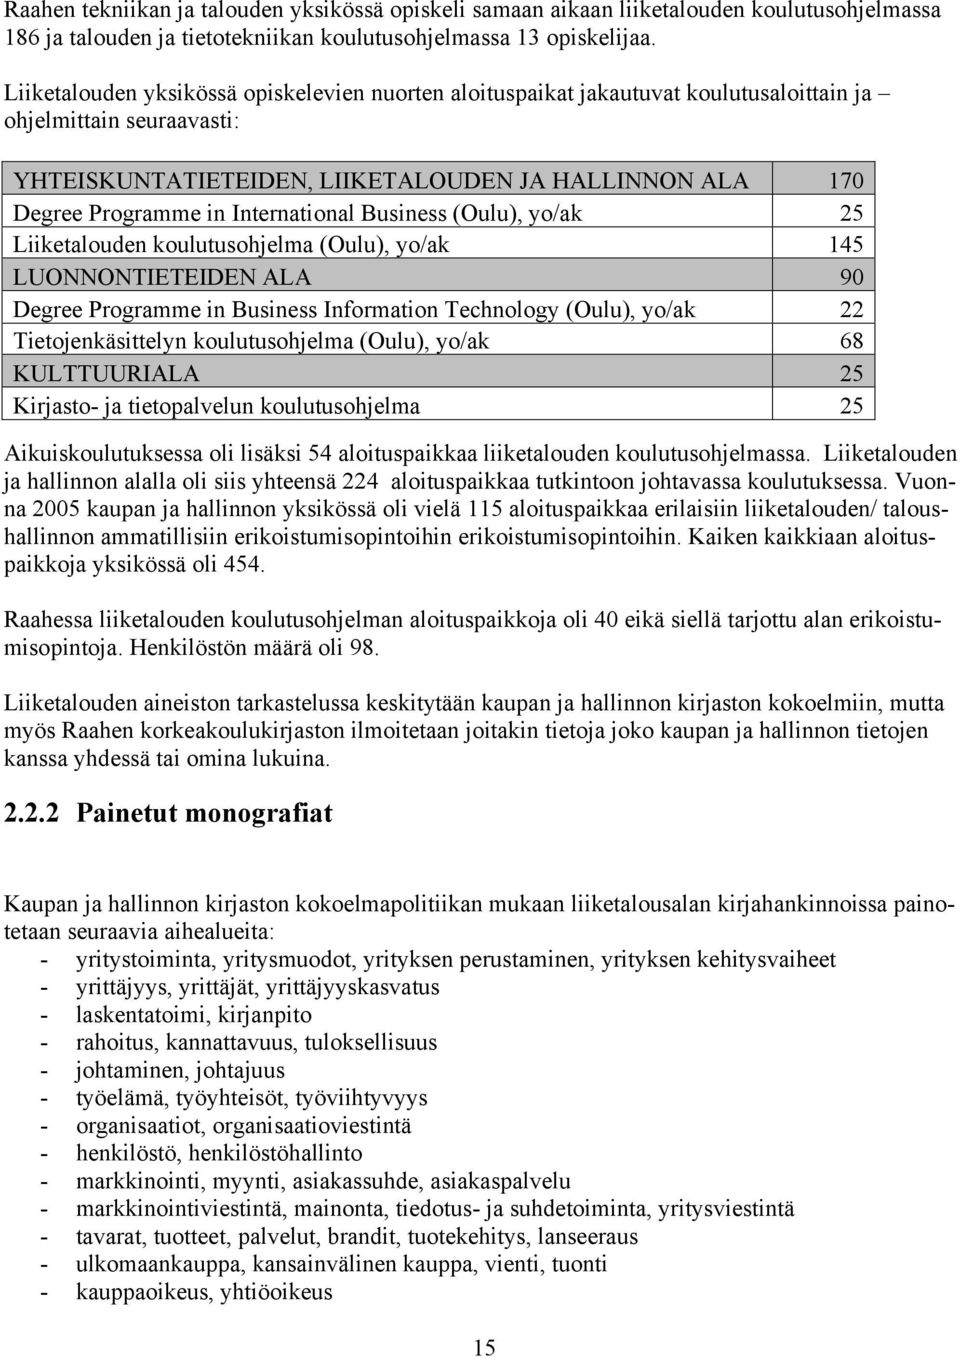 International Business (Oulu), yo/ak 25 Liiketalouden koulutusohjelma (Oulu), yo/ak 145 LUONNONTIETEIDEN ALA 90 Degree Programme in Business Information Technology (Oulu), yo/ak 22 Tietojenkäsittelyn